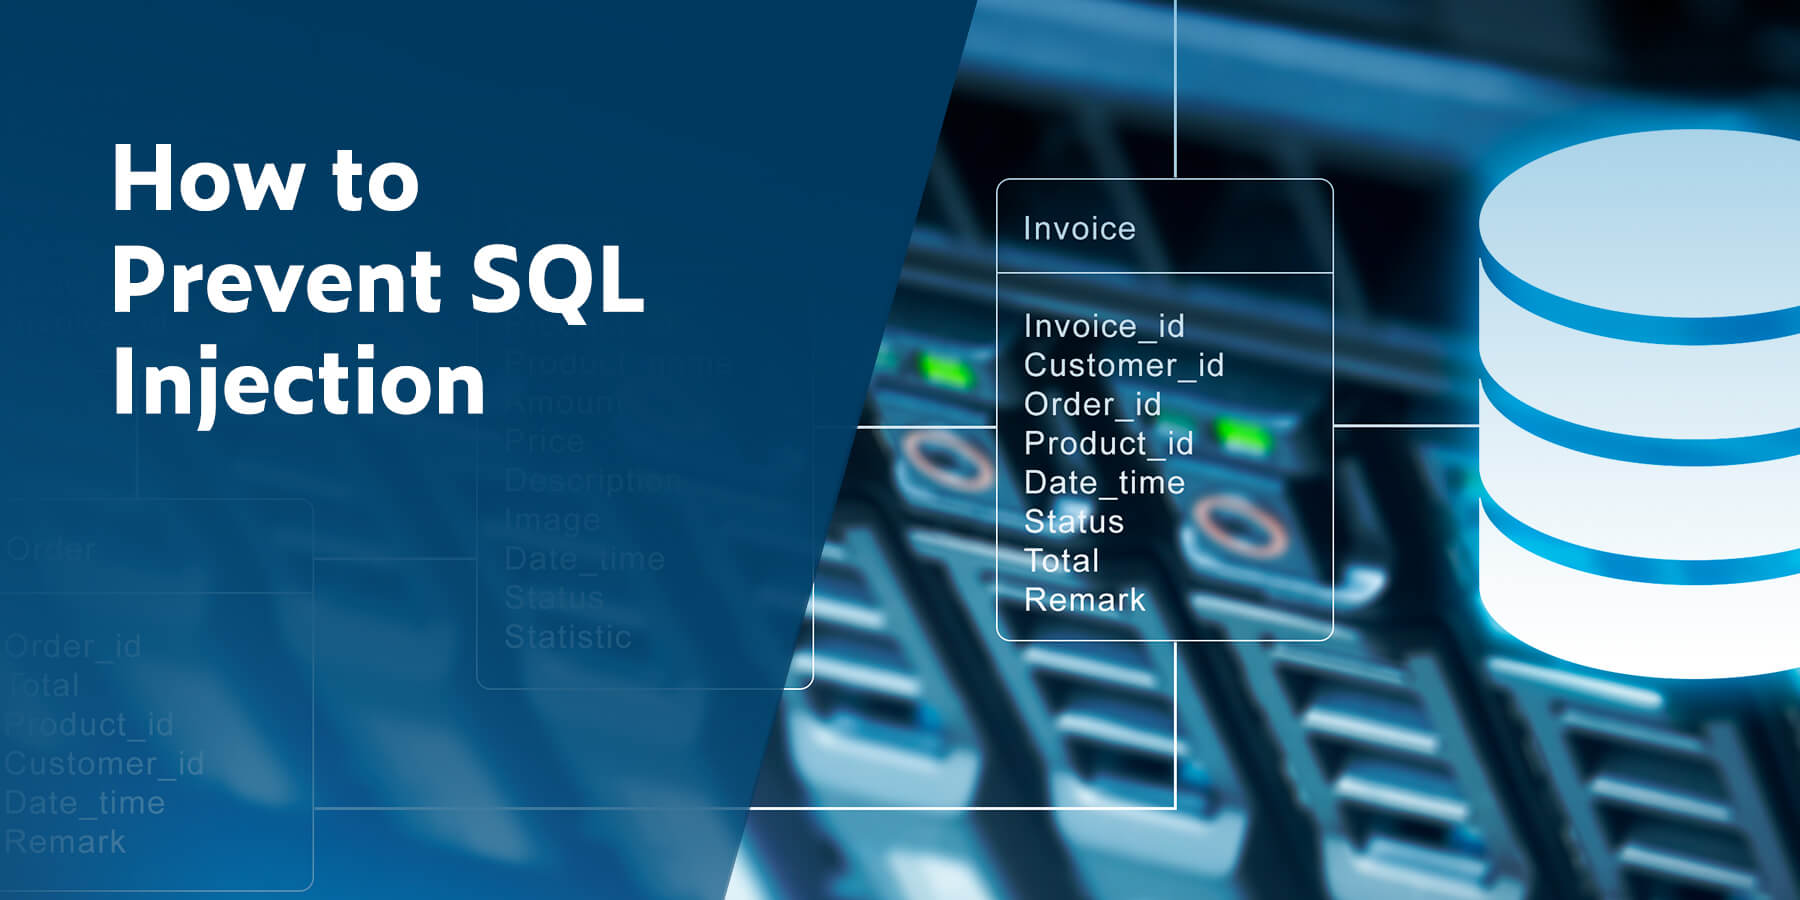 How to Prevent SQL Injection